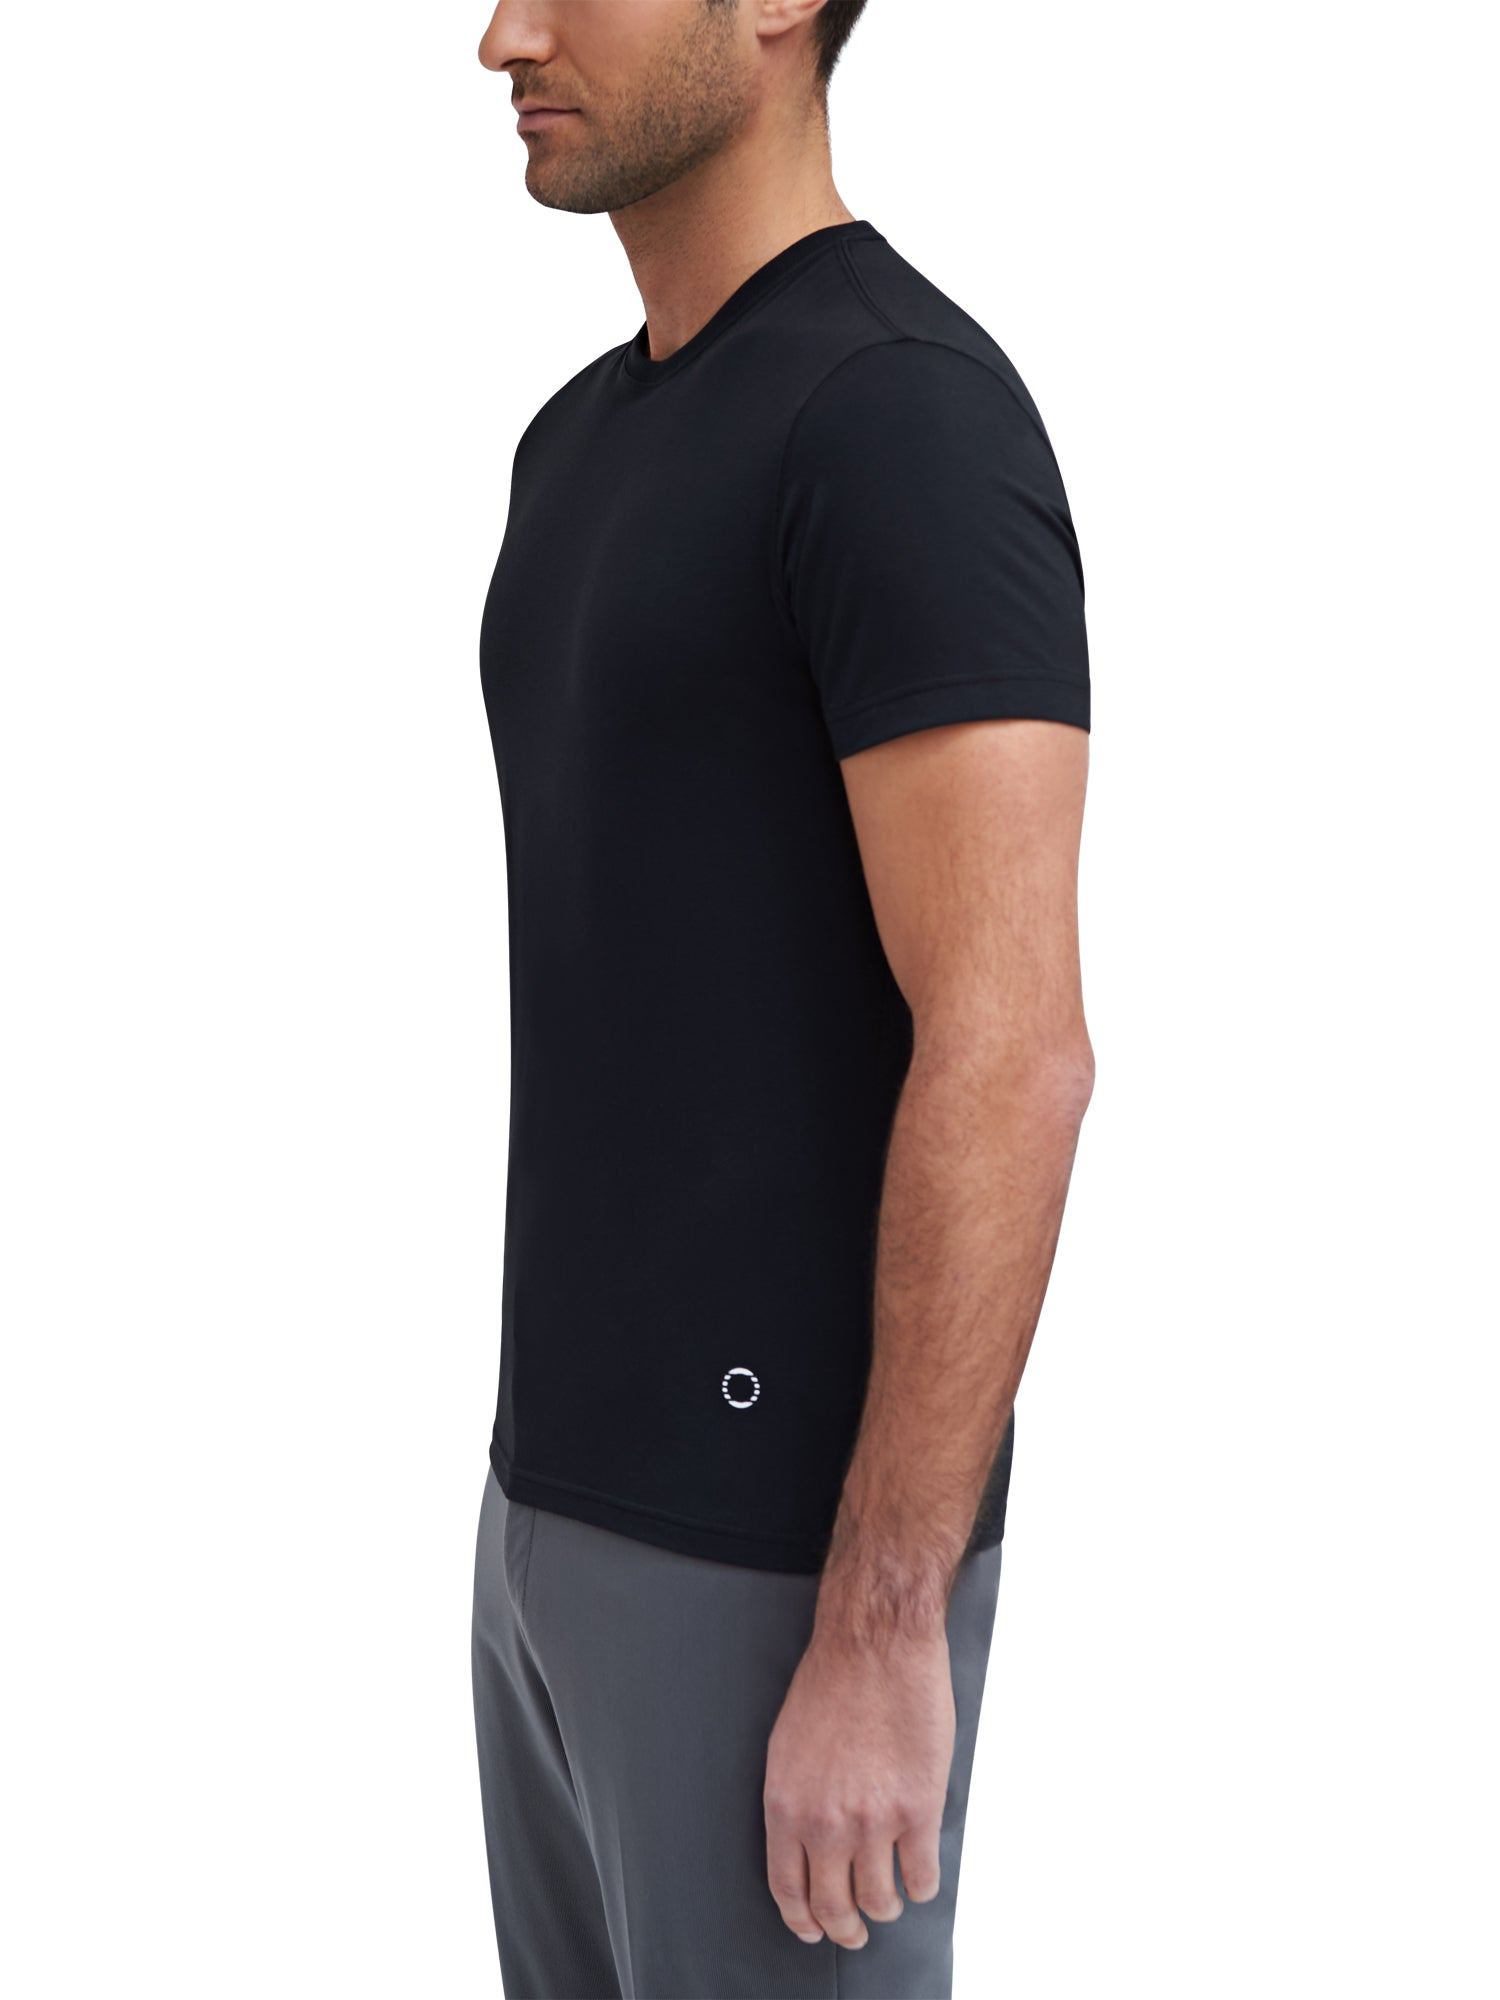 Voyager Crewneck T-Shirt - Black - EFM Menswear Engineered For Motion